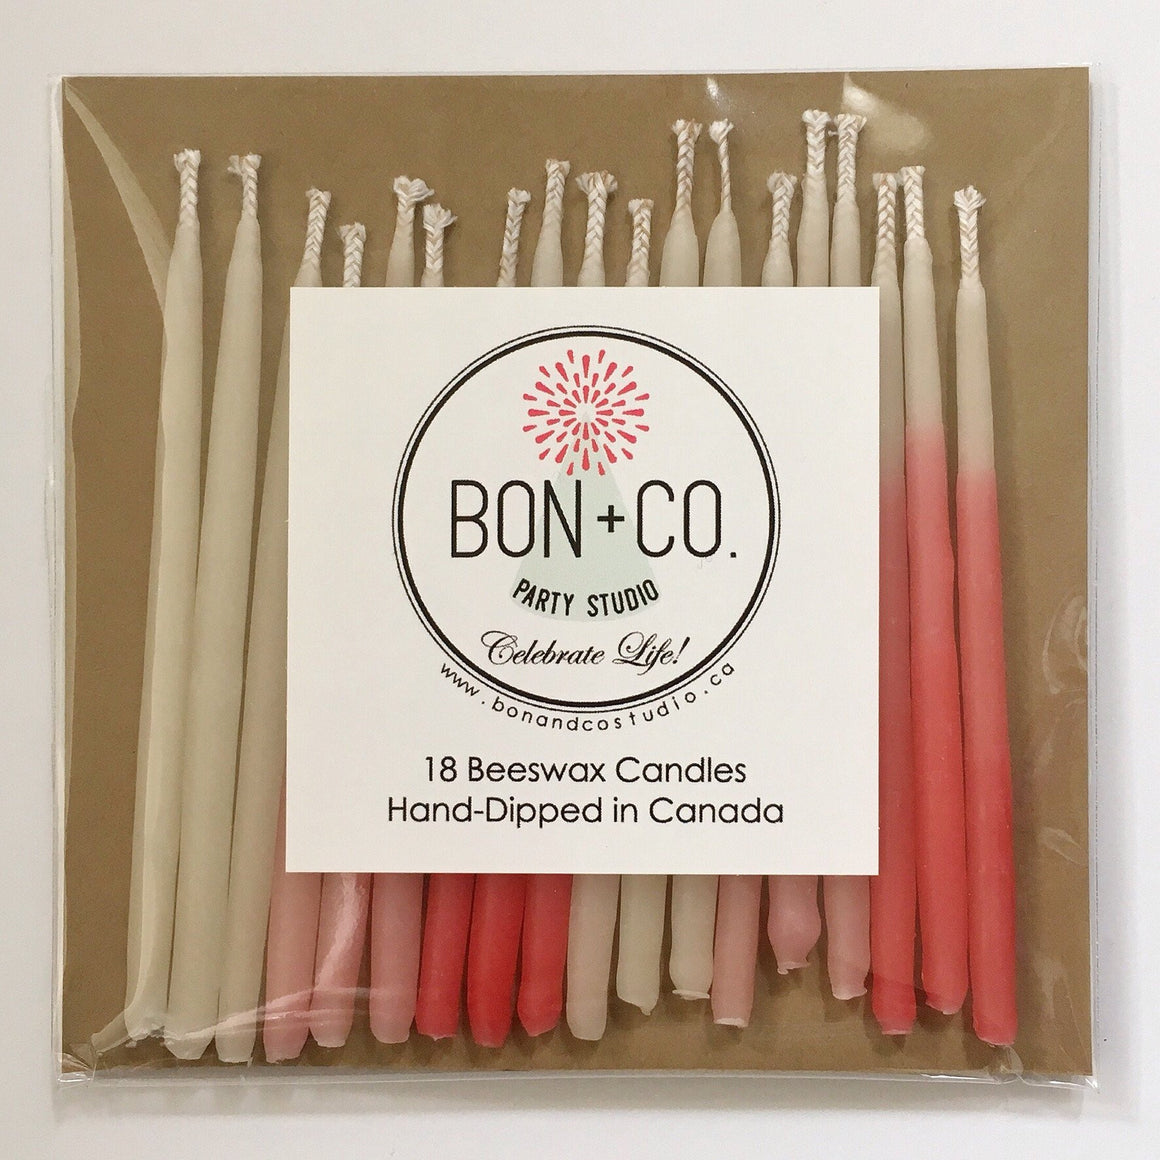 "CANDLES 3"" BEESWAX - OMBRE WARM HUES, Candles + Sparklers, BON + CO - Bon + Co. Party Studio"